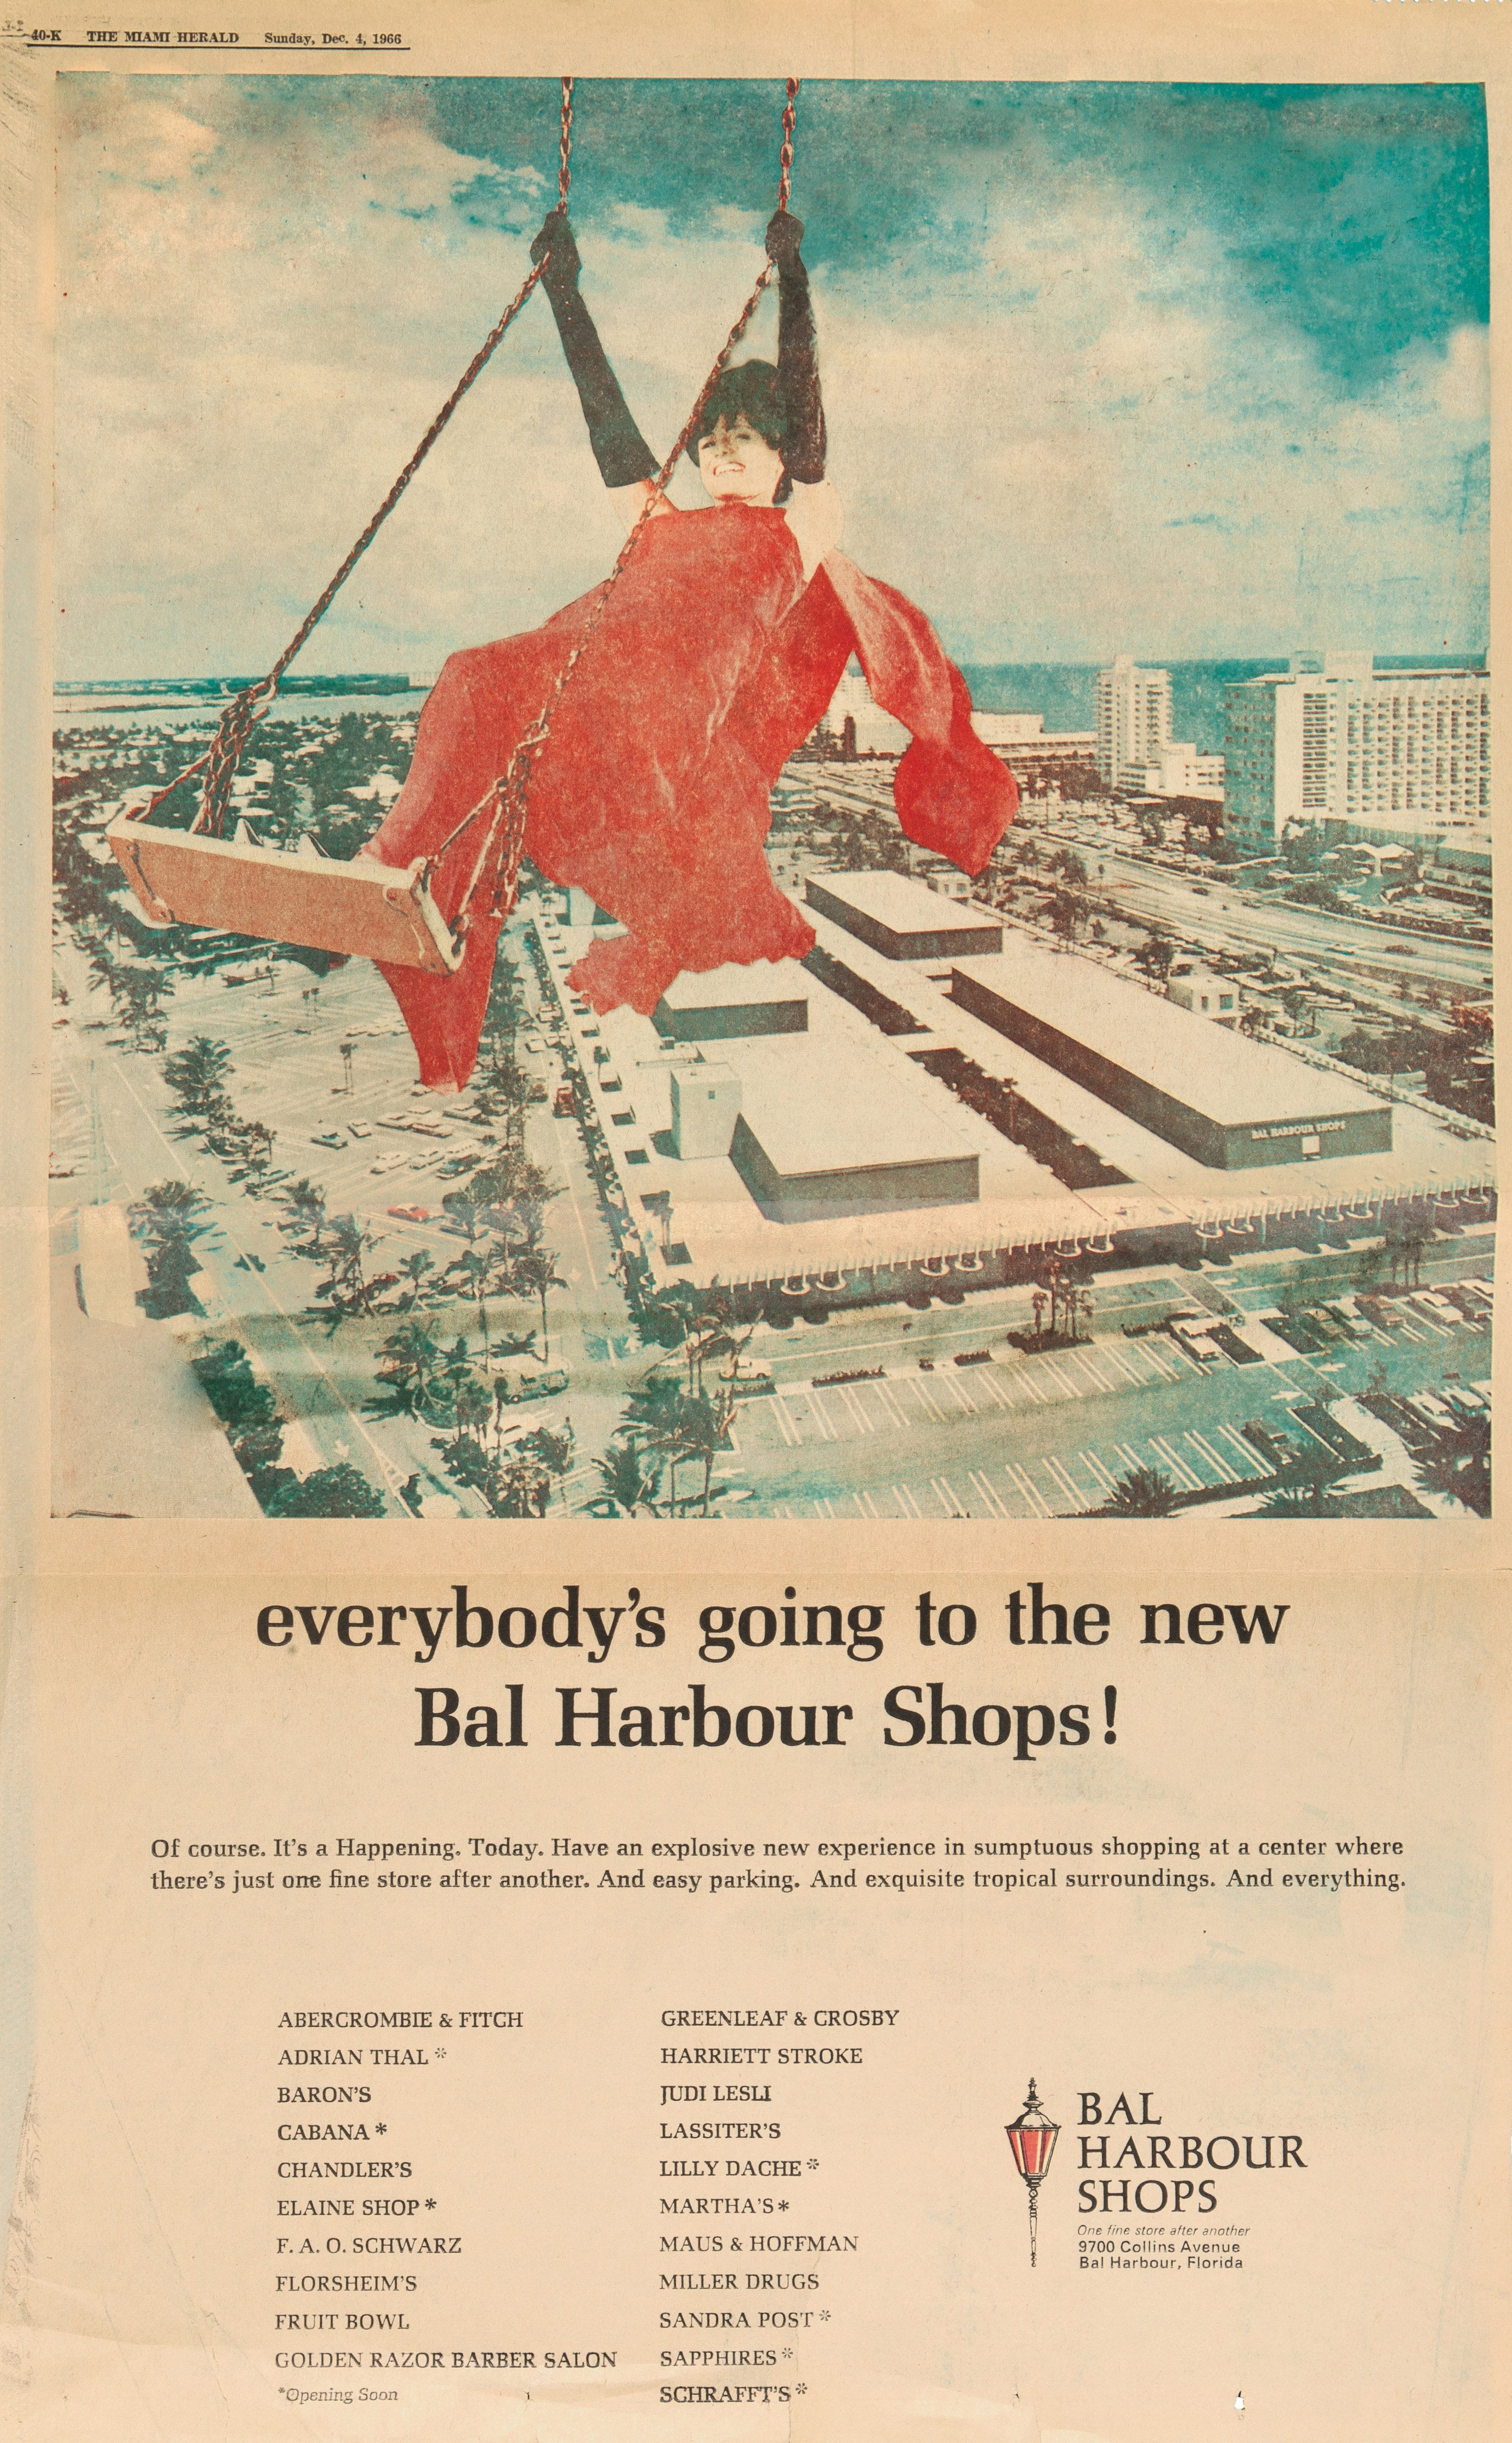 Full-page ad for Bal Harbour Shops in The Miami Herald from December 4, 1966 depicting an image of the woman in a red dress swinging above the Shops